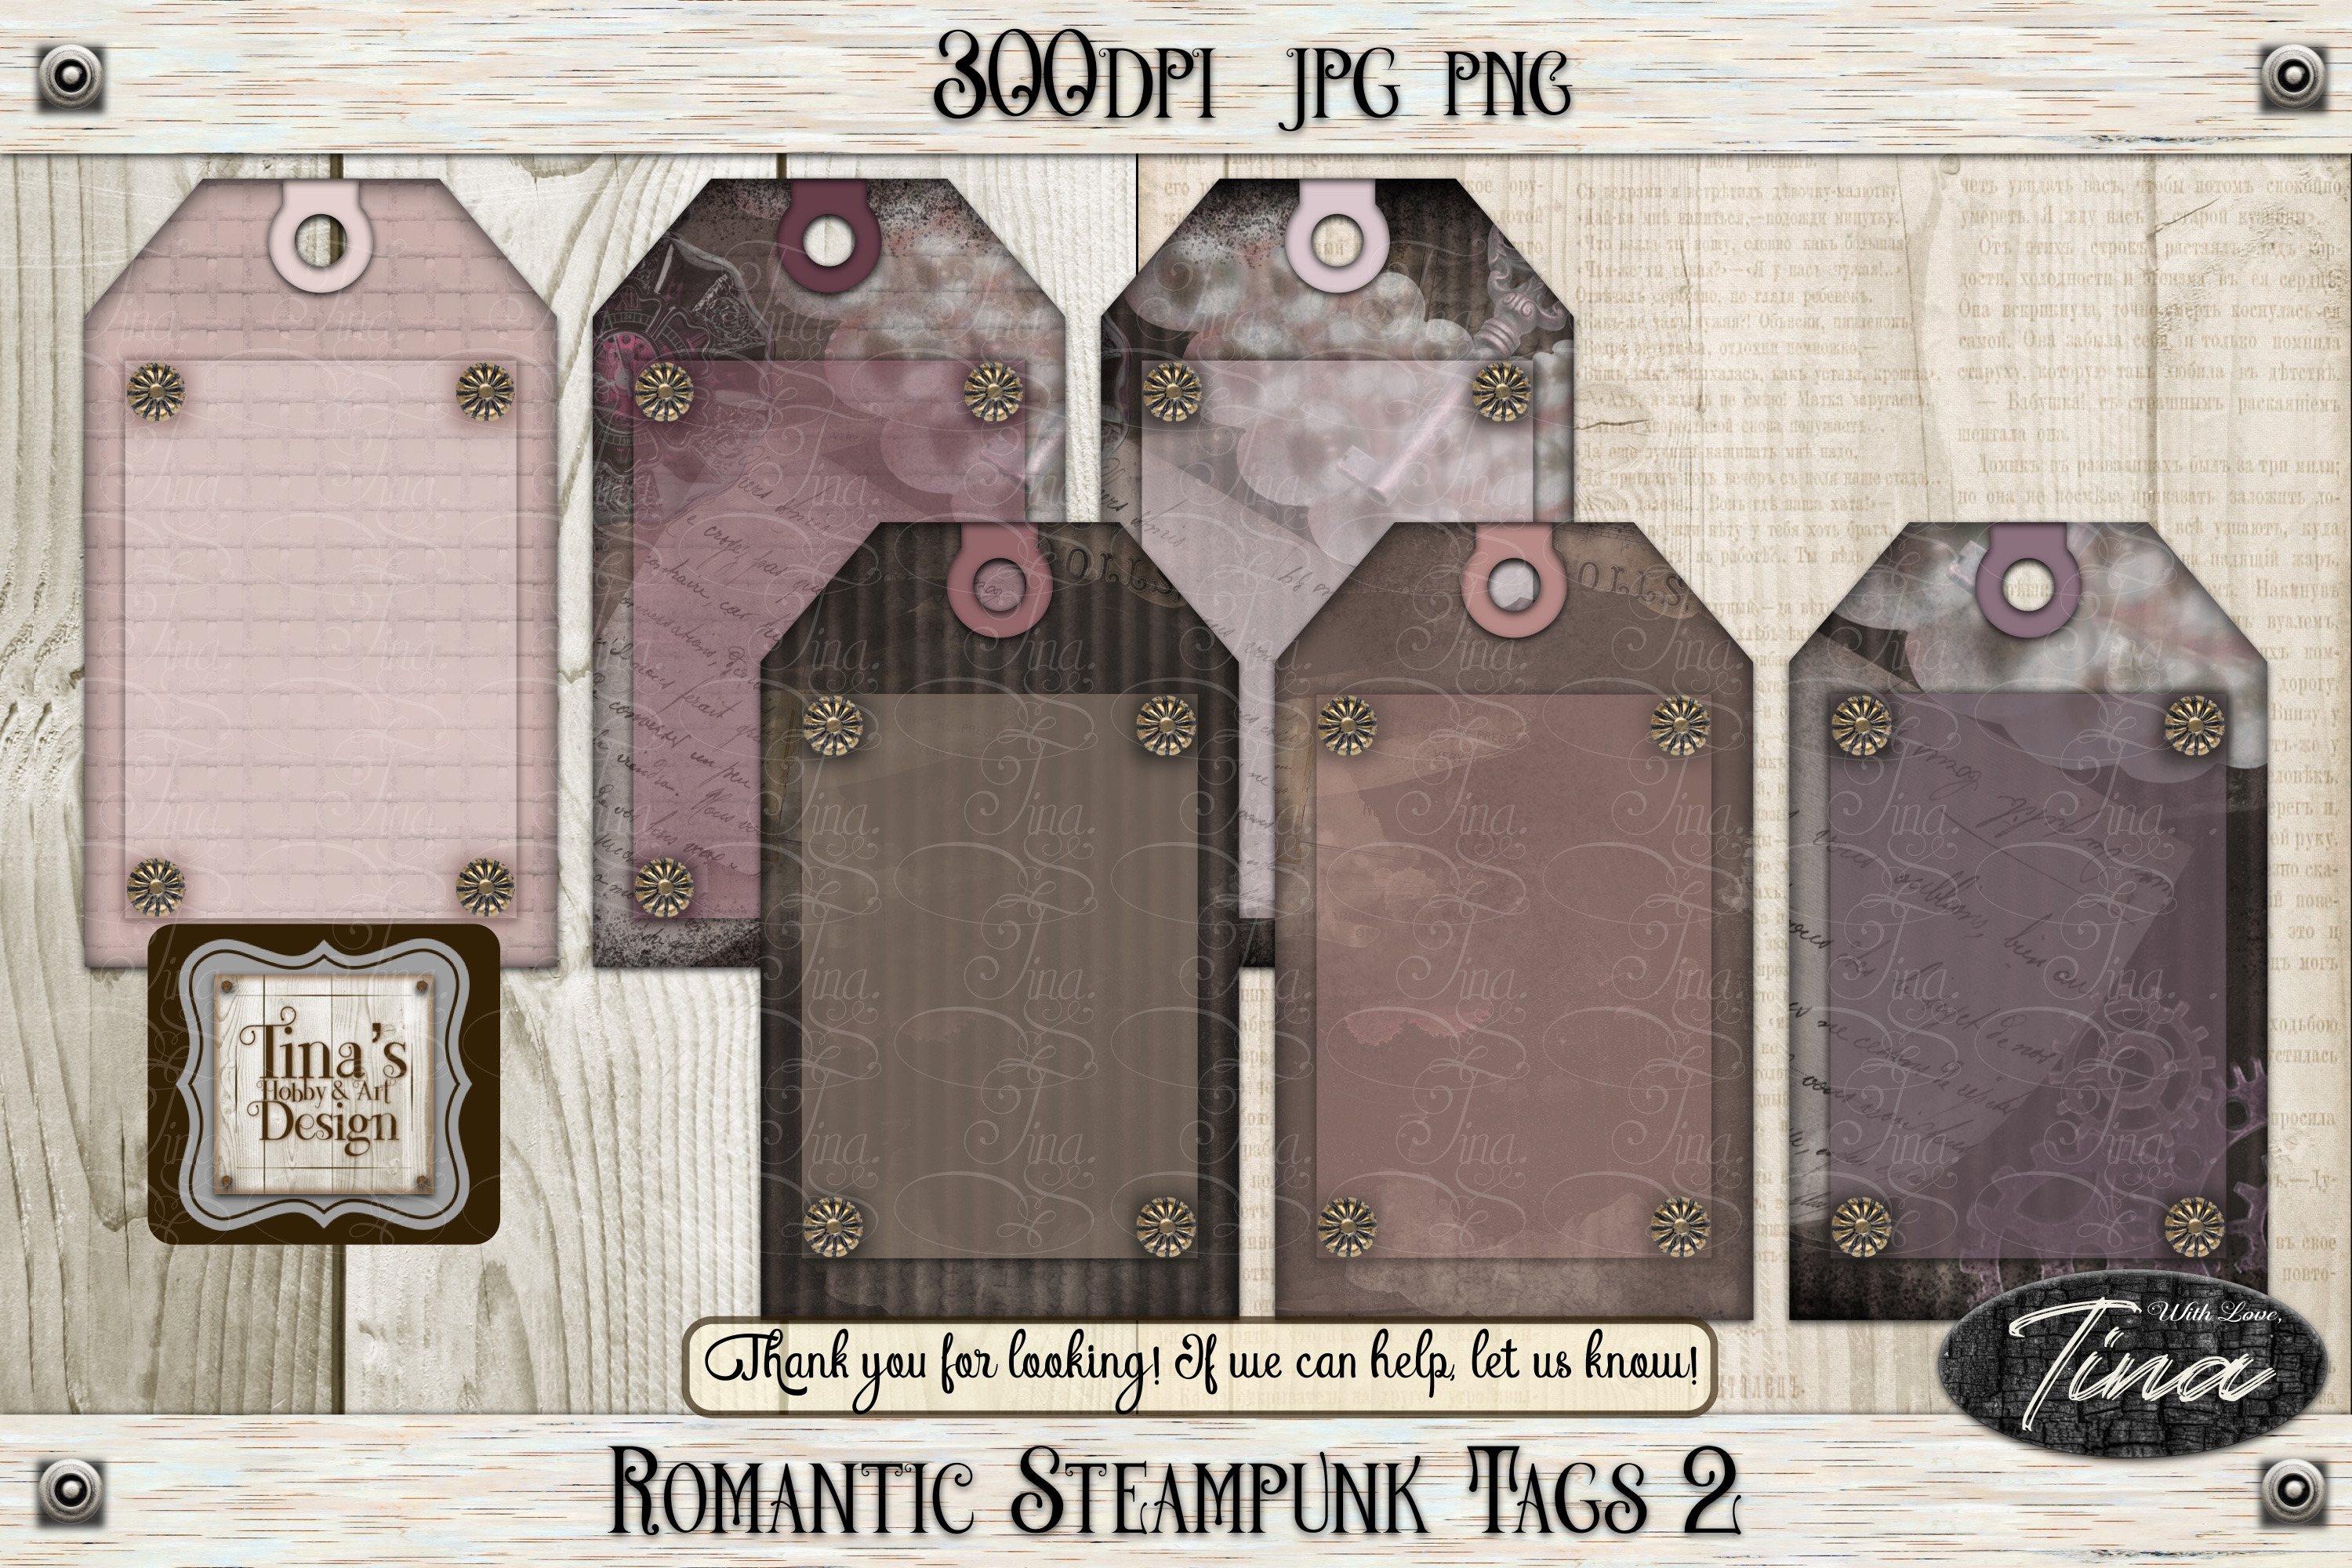 Romantic Steampunk Tags 2 Collage Mauve Grunge 101918RST2 example image 1